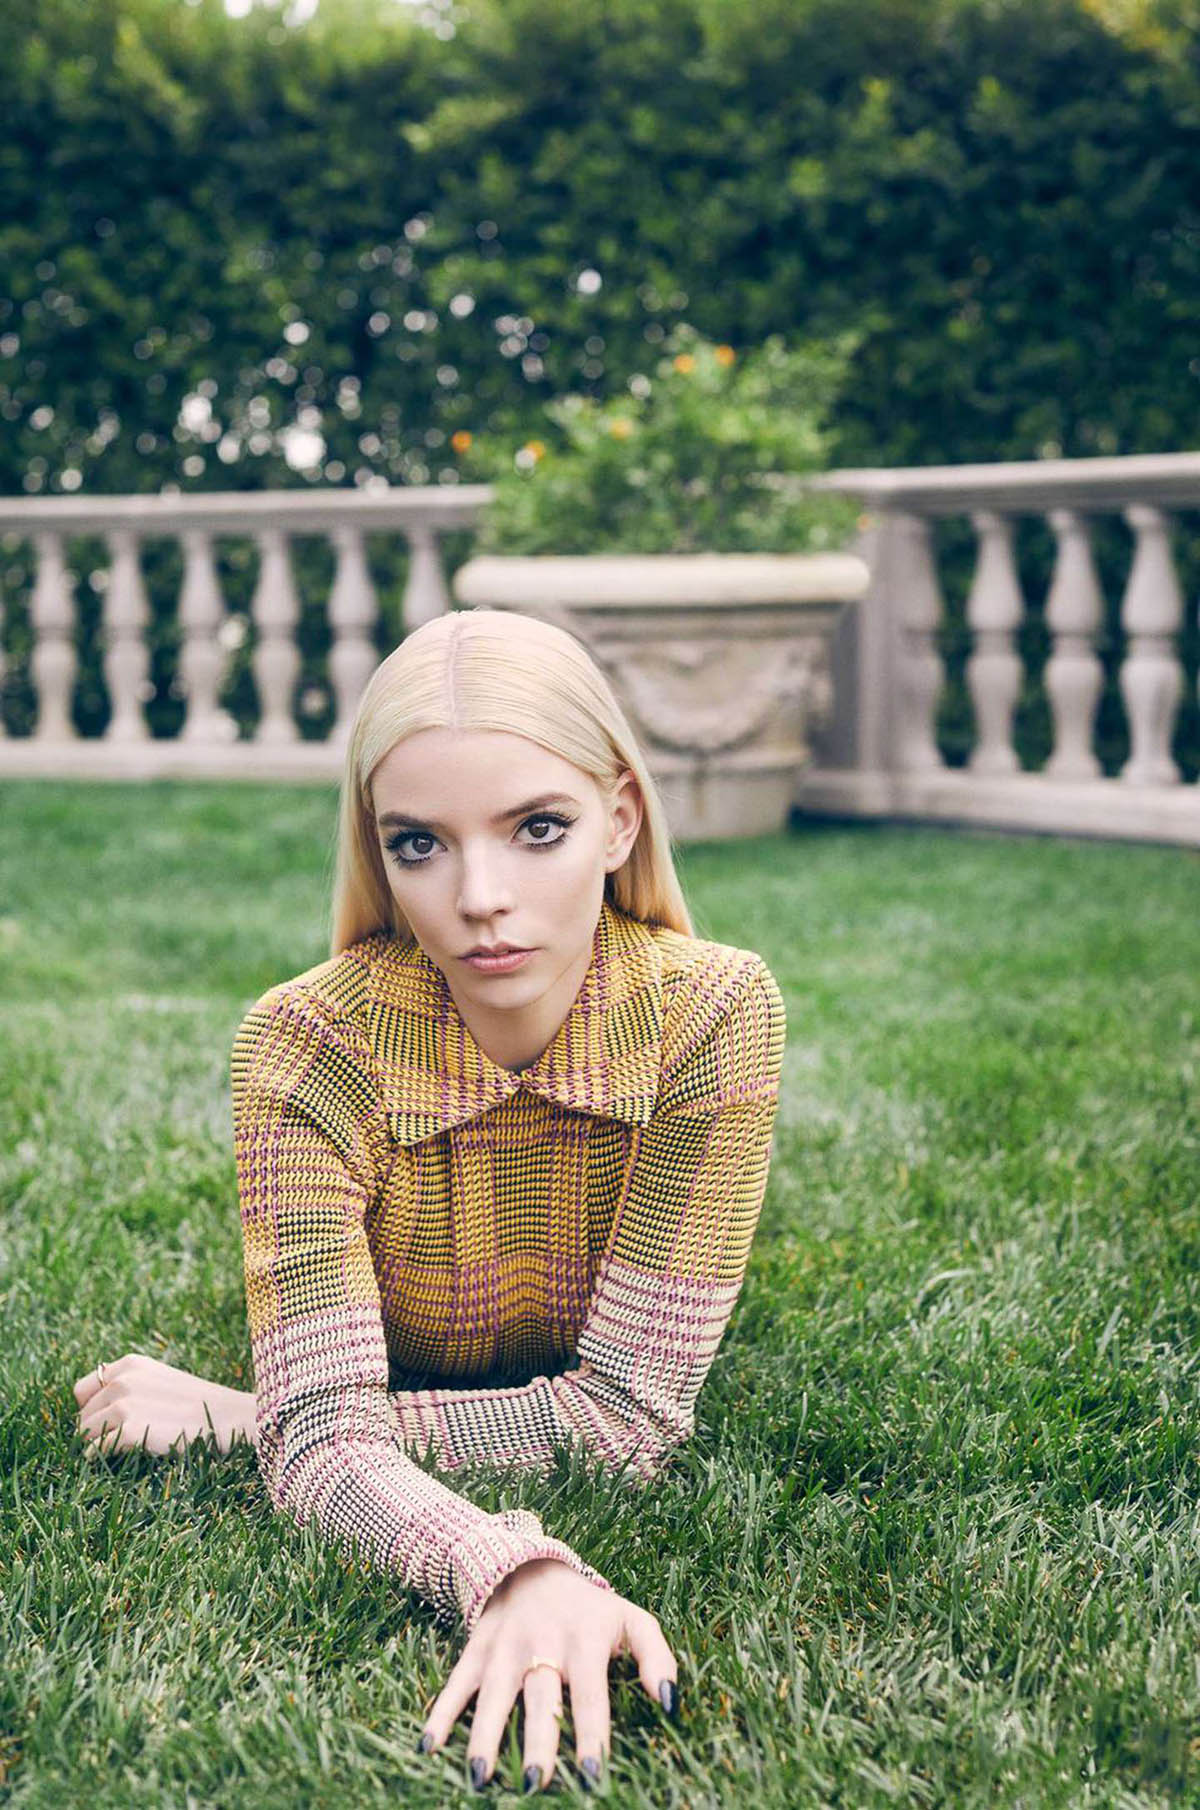 Anya Taylor-Joy covers Elle US May 2021 by Zoey Grossman